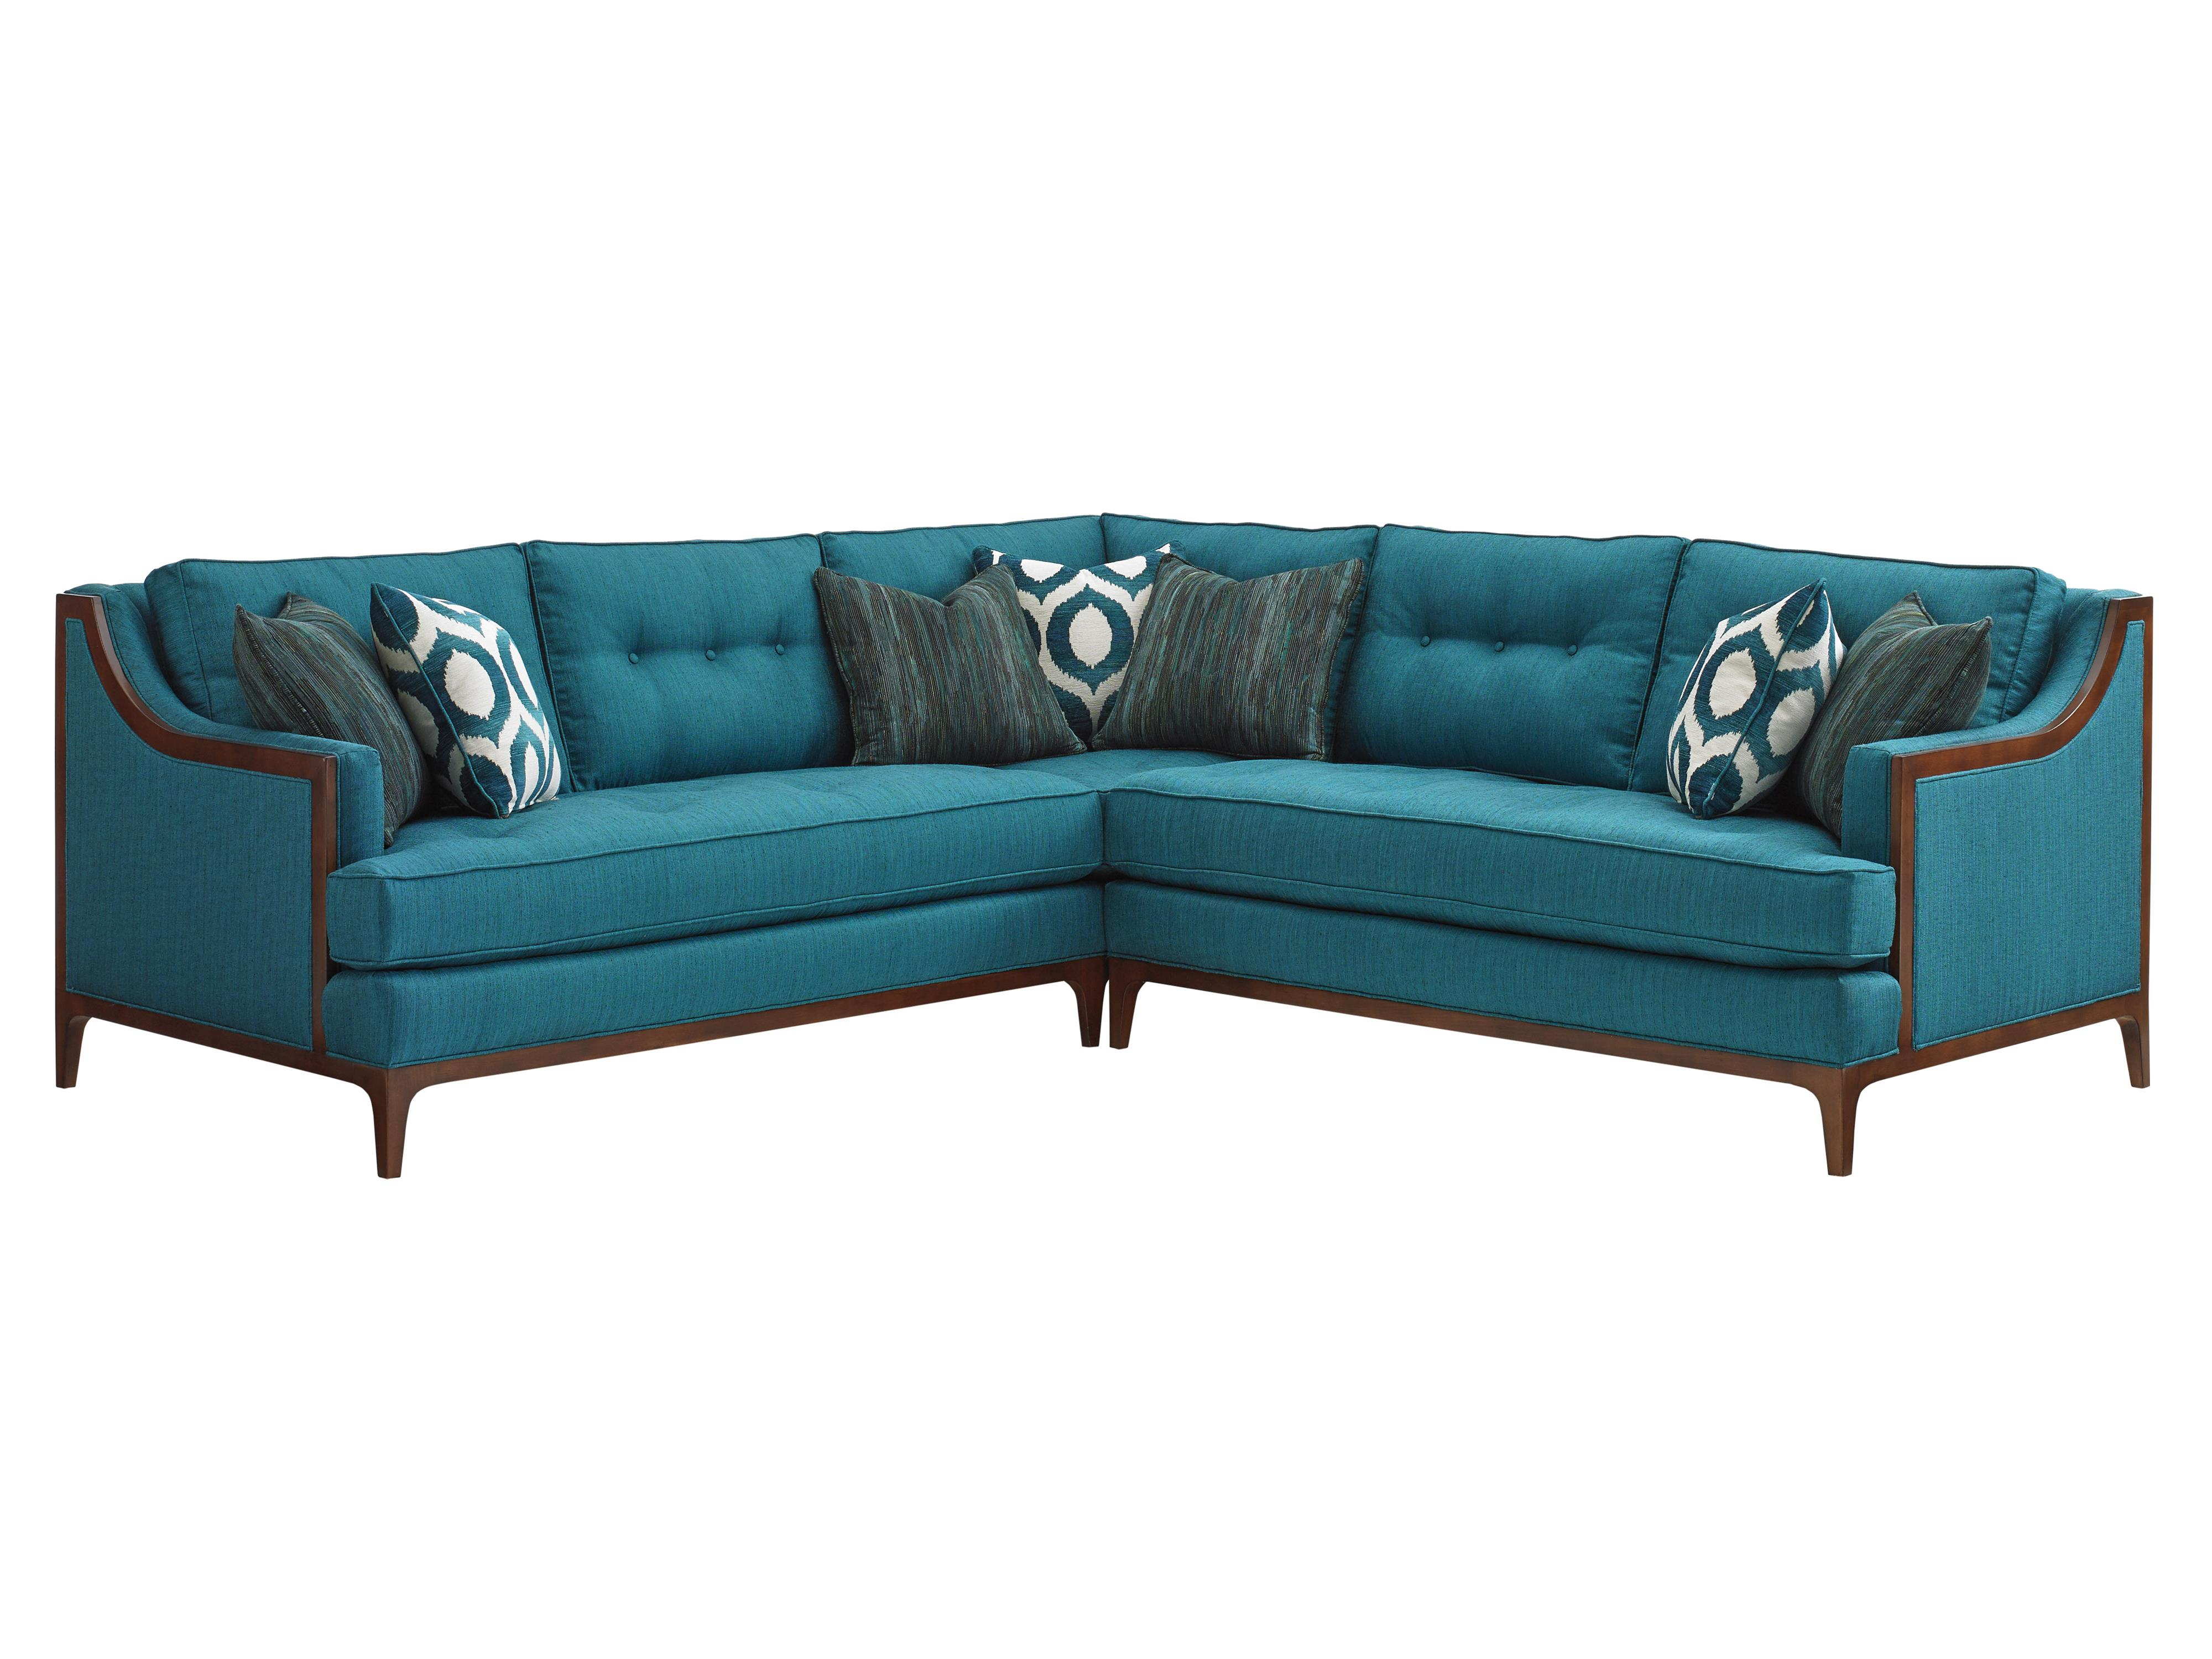 TAKE FIVE Barclay Sectional Sofa by Lexington at Baer's Furniture